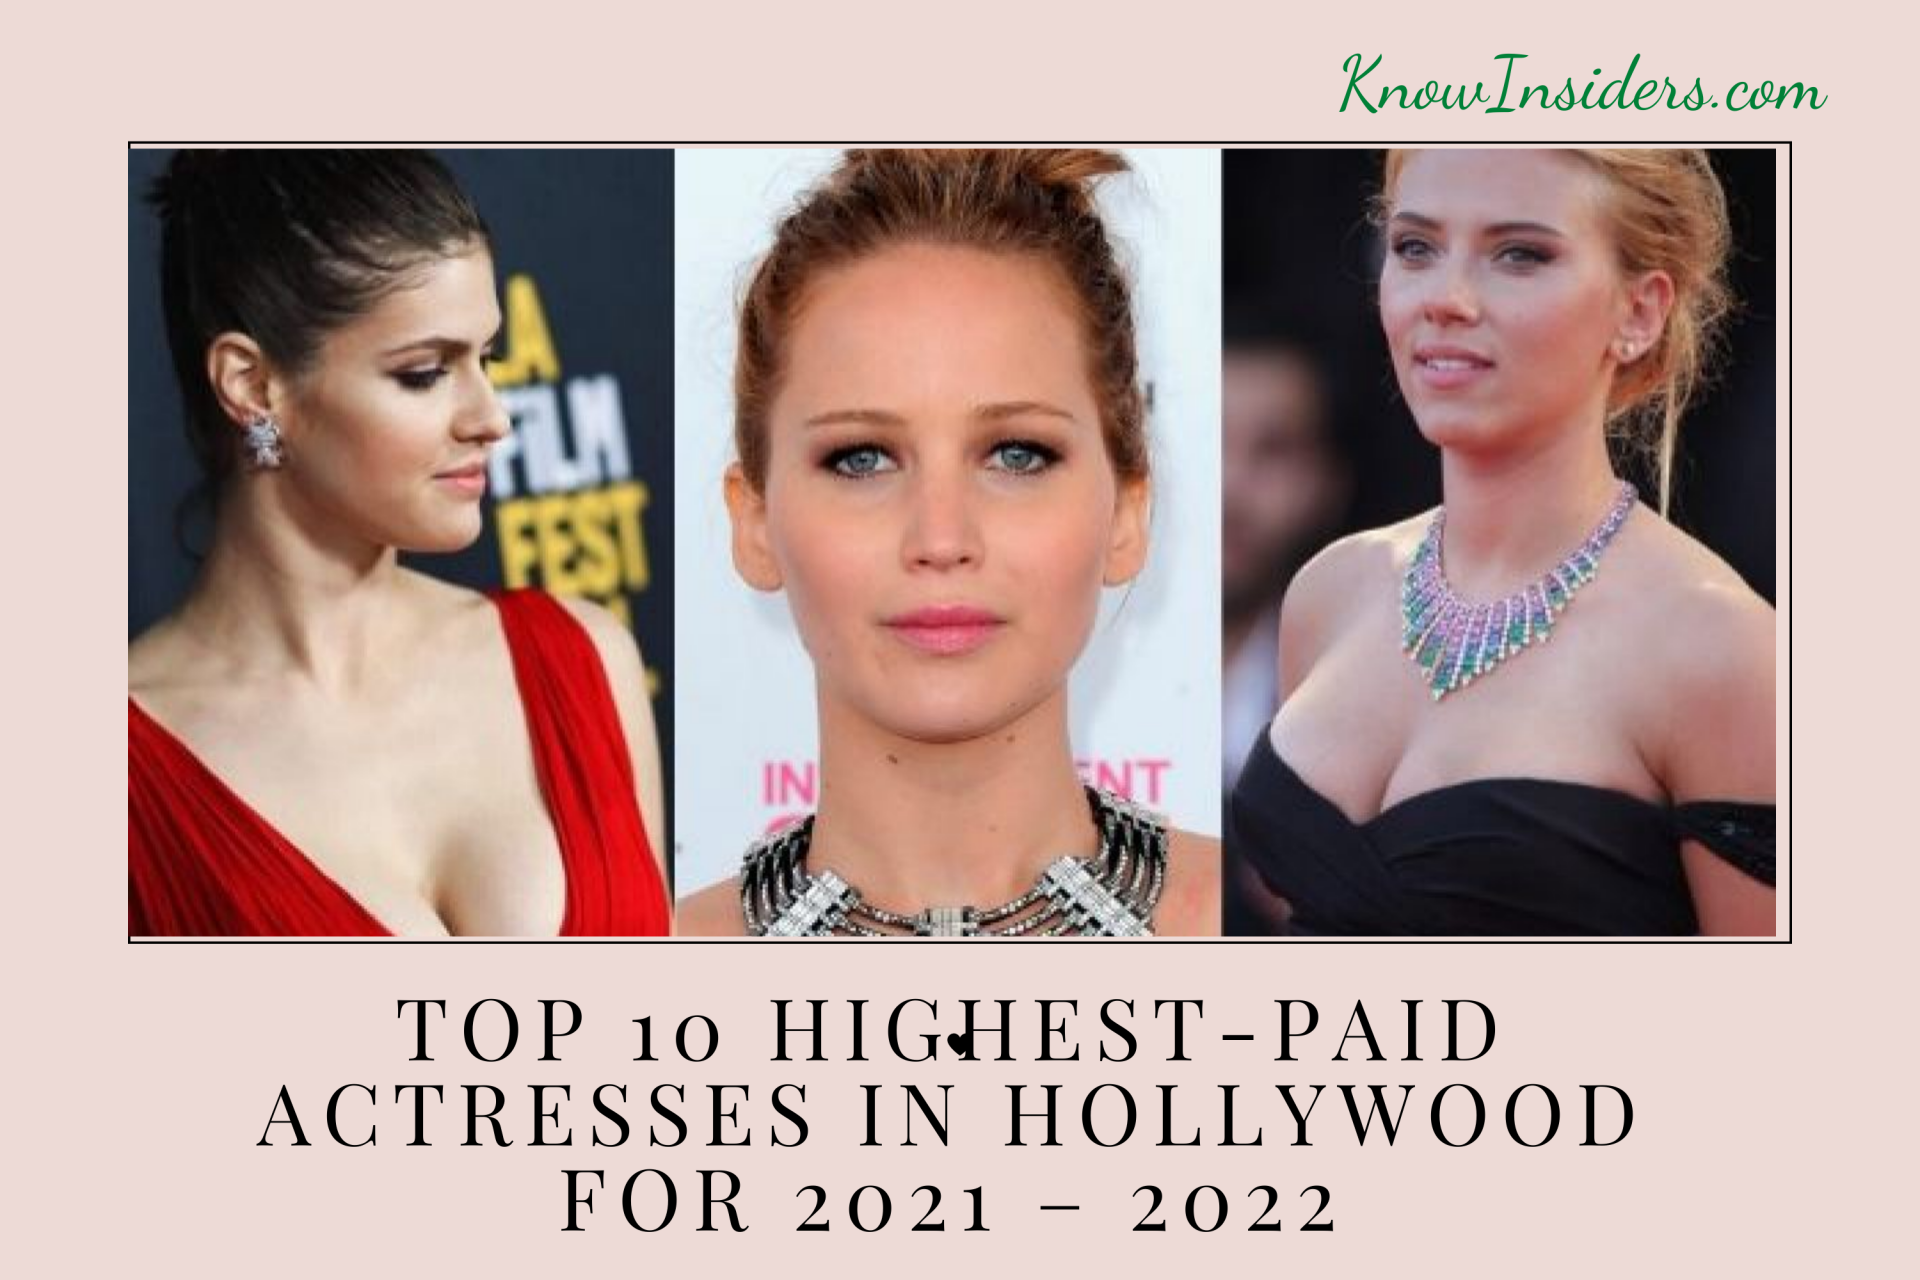 Top 10 Highest-Paid Actresses in Hollywood for 2021/2022